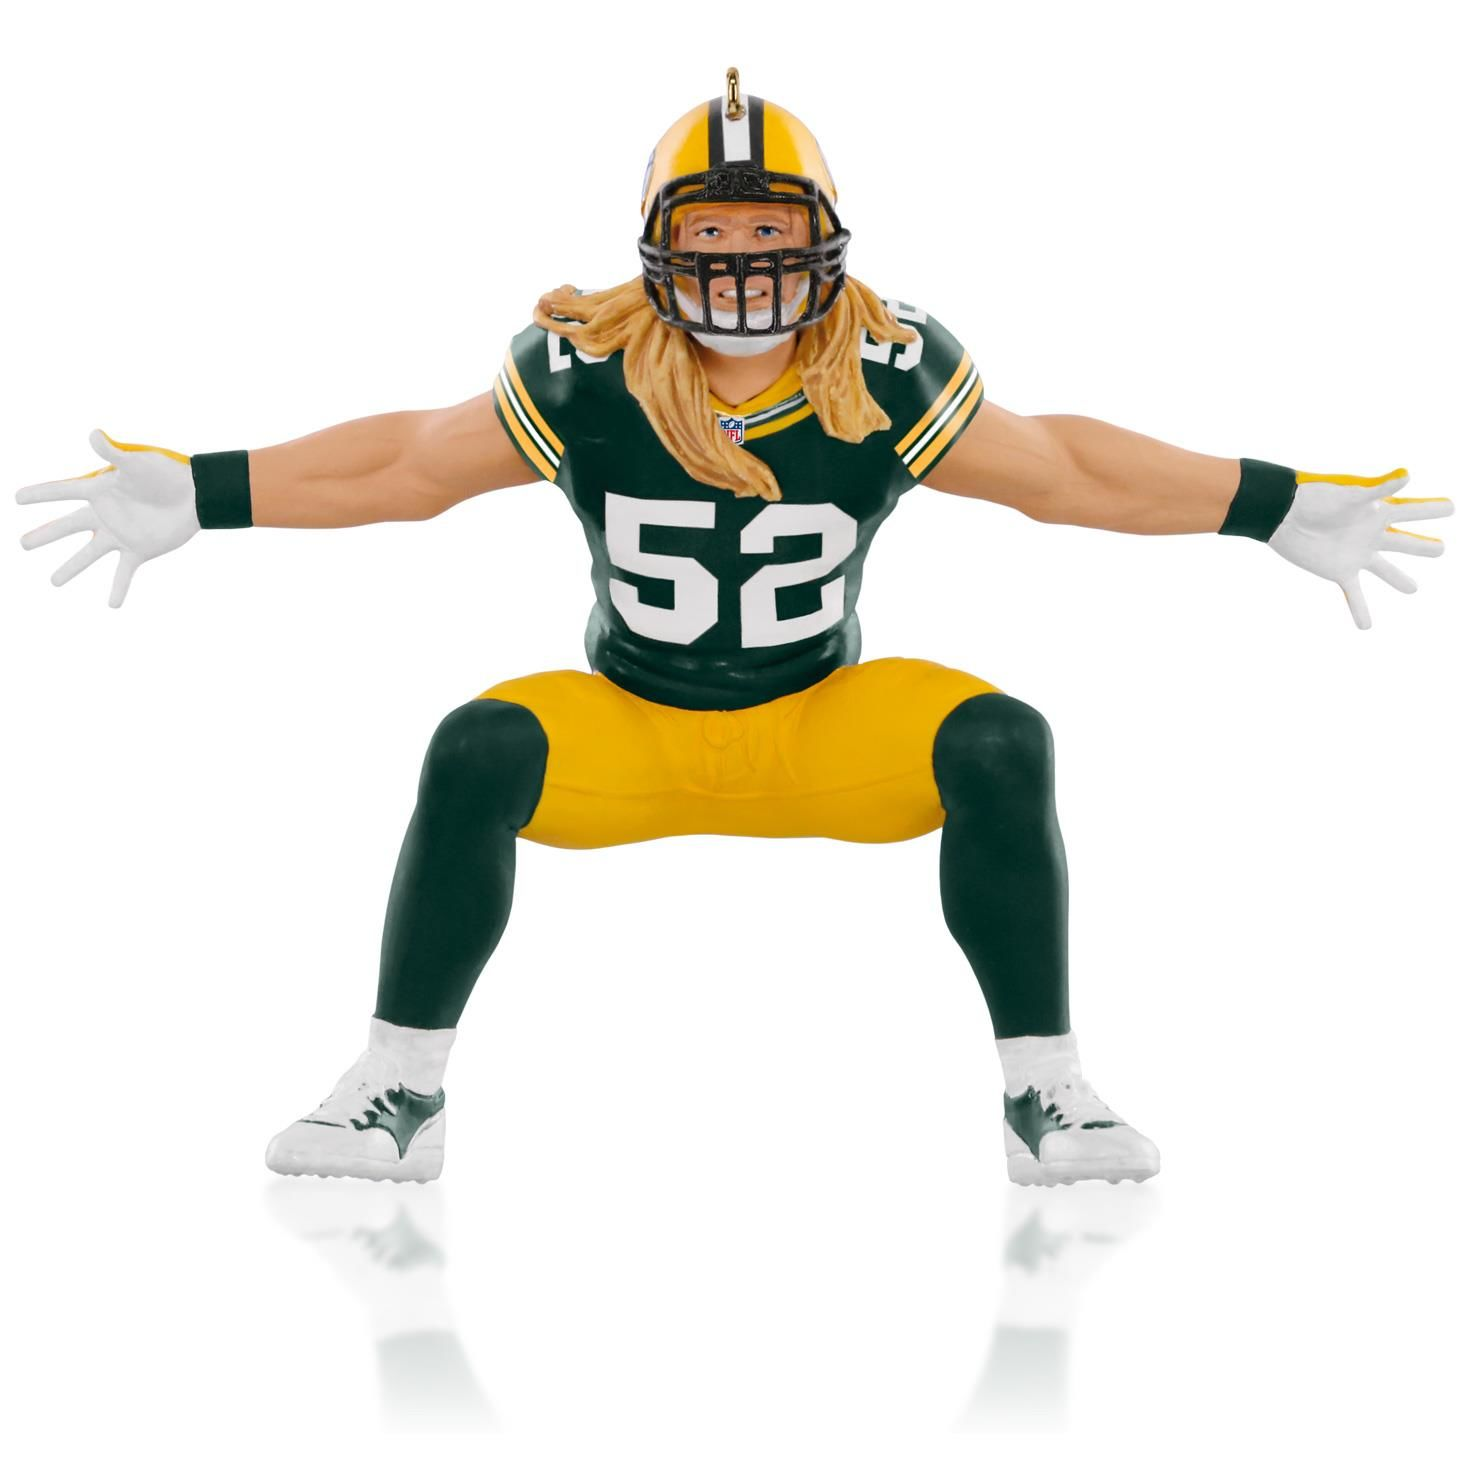 2015 football legends clay matthews green bay packers hallmark keepsake ornament hooked on hallmark ornaments - Green Bay Packers Christmas Ornaments